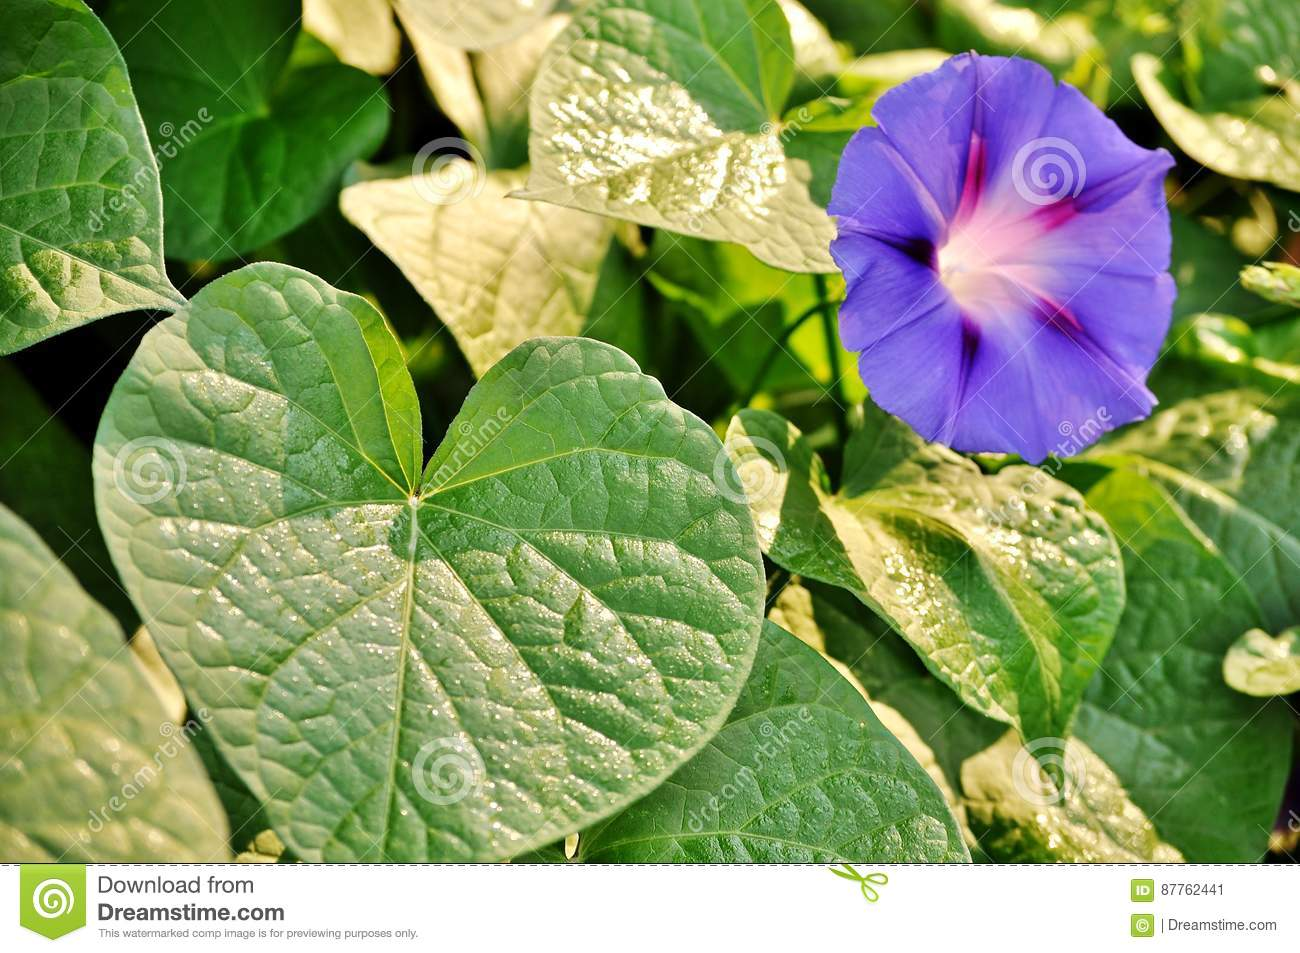 Green Leaves And Morning Glory Ipomea Purpurea Open Flower Stock